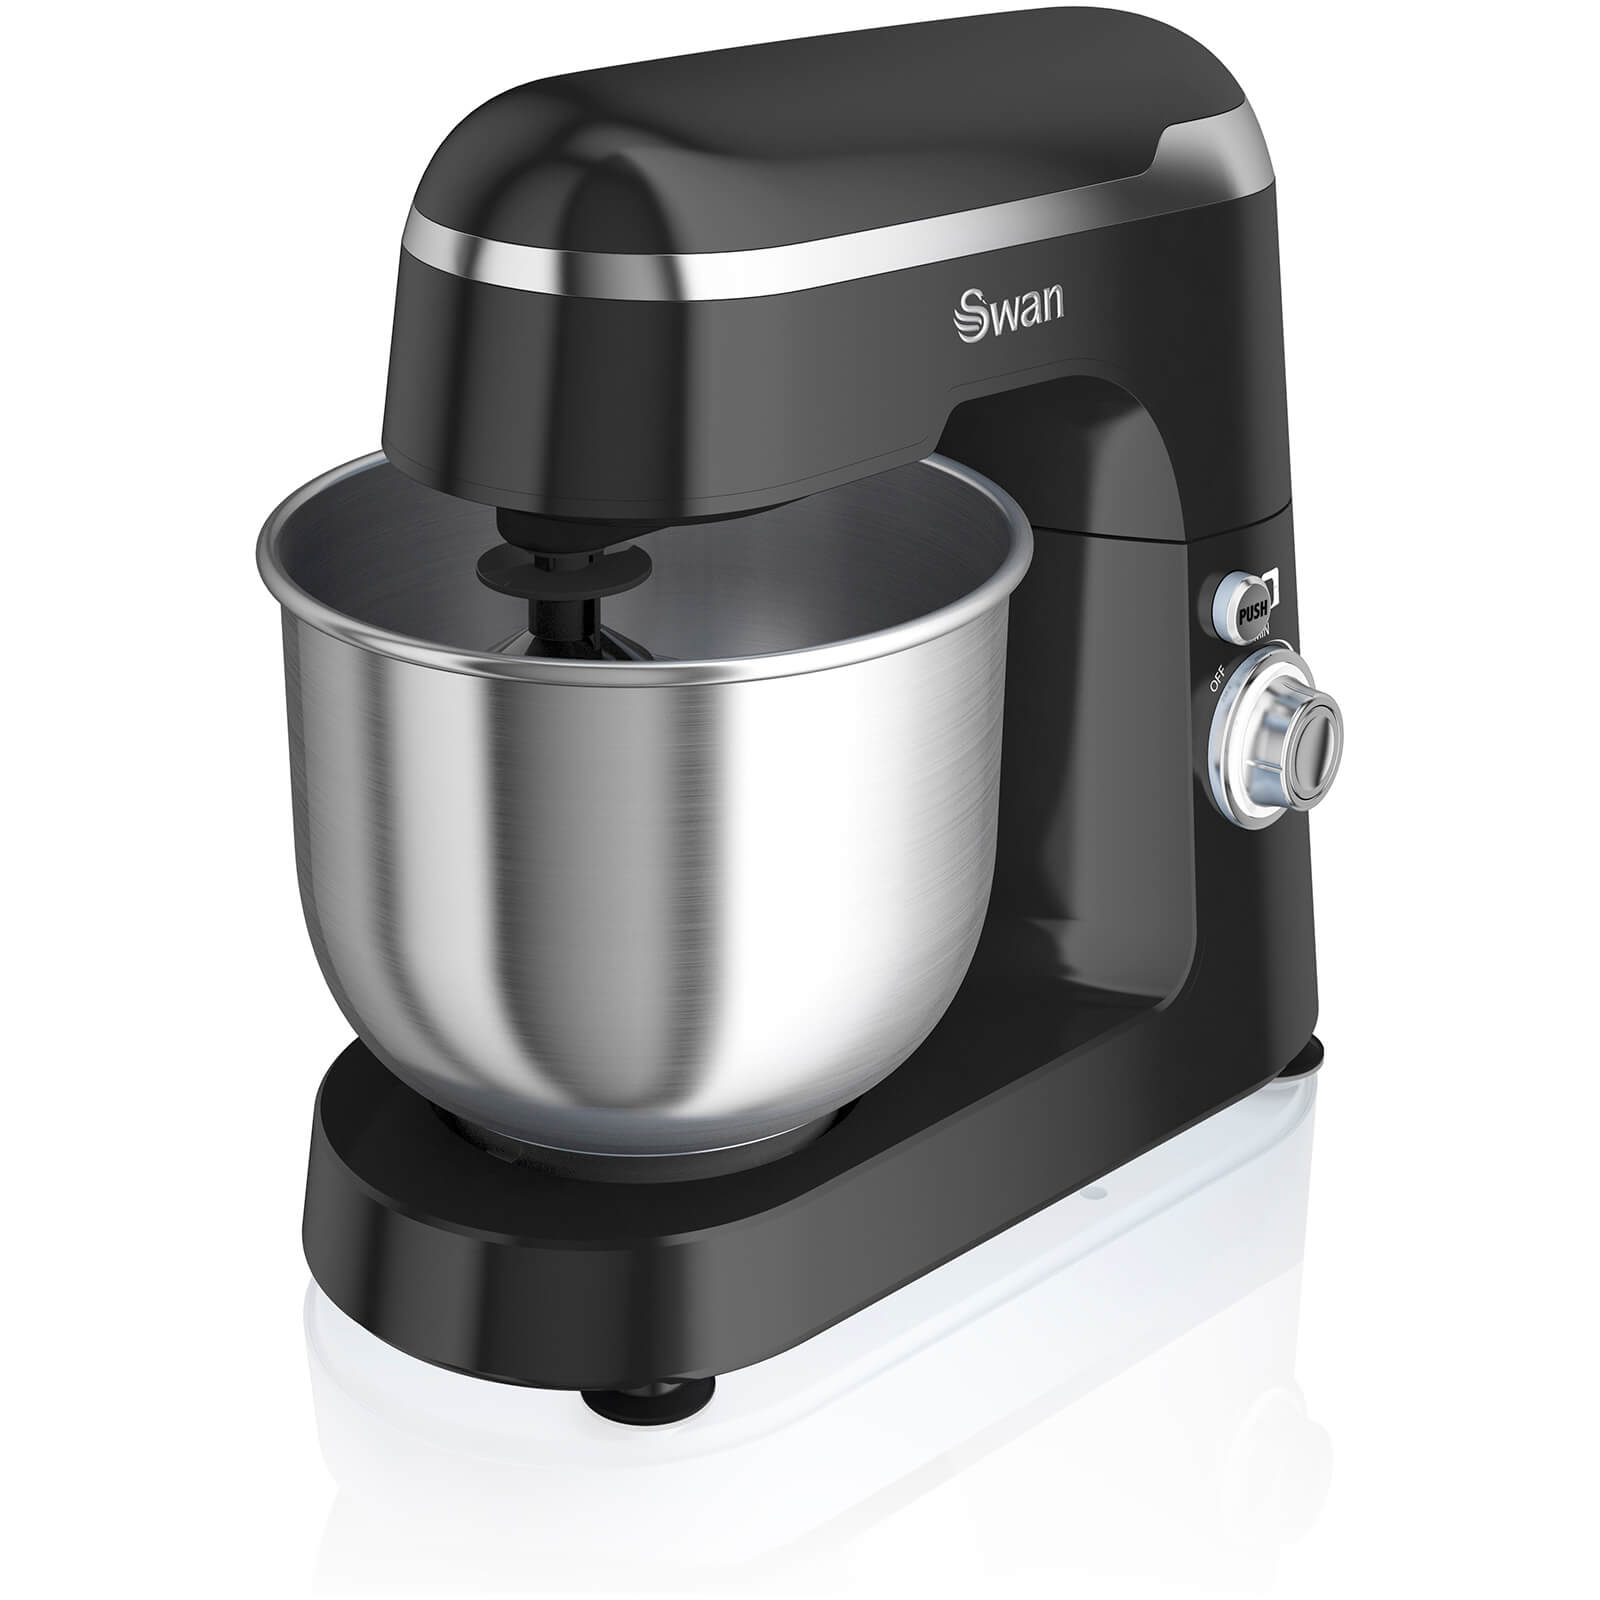 Swan SP25010BN Retro Stand Mixer - Black